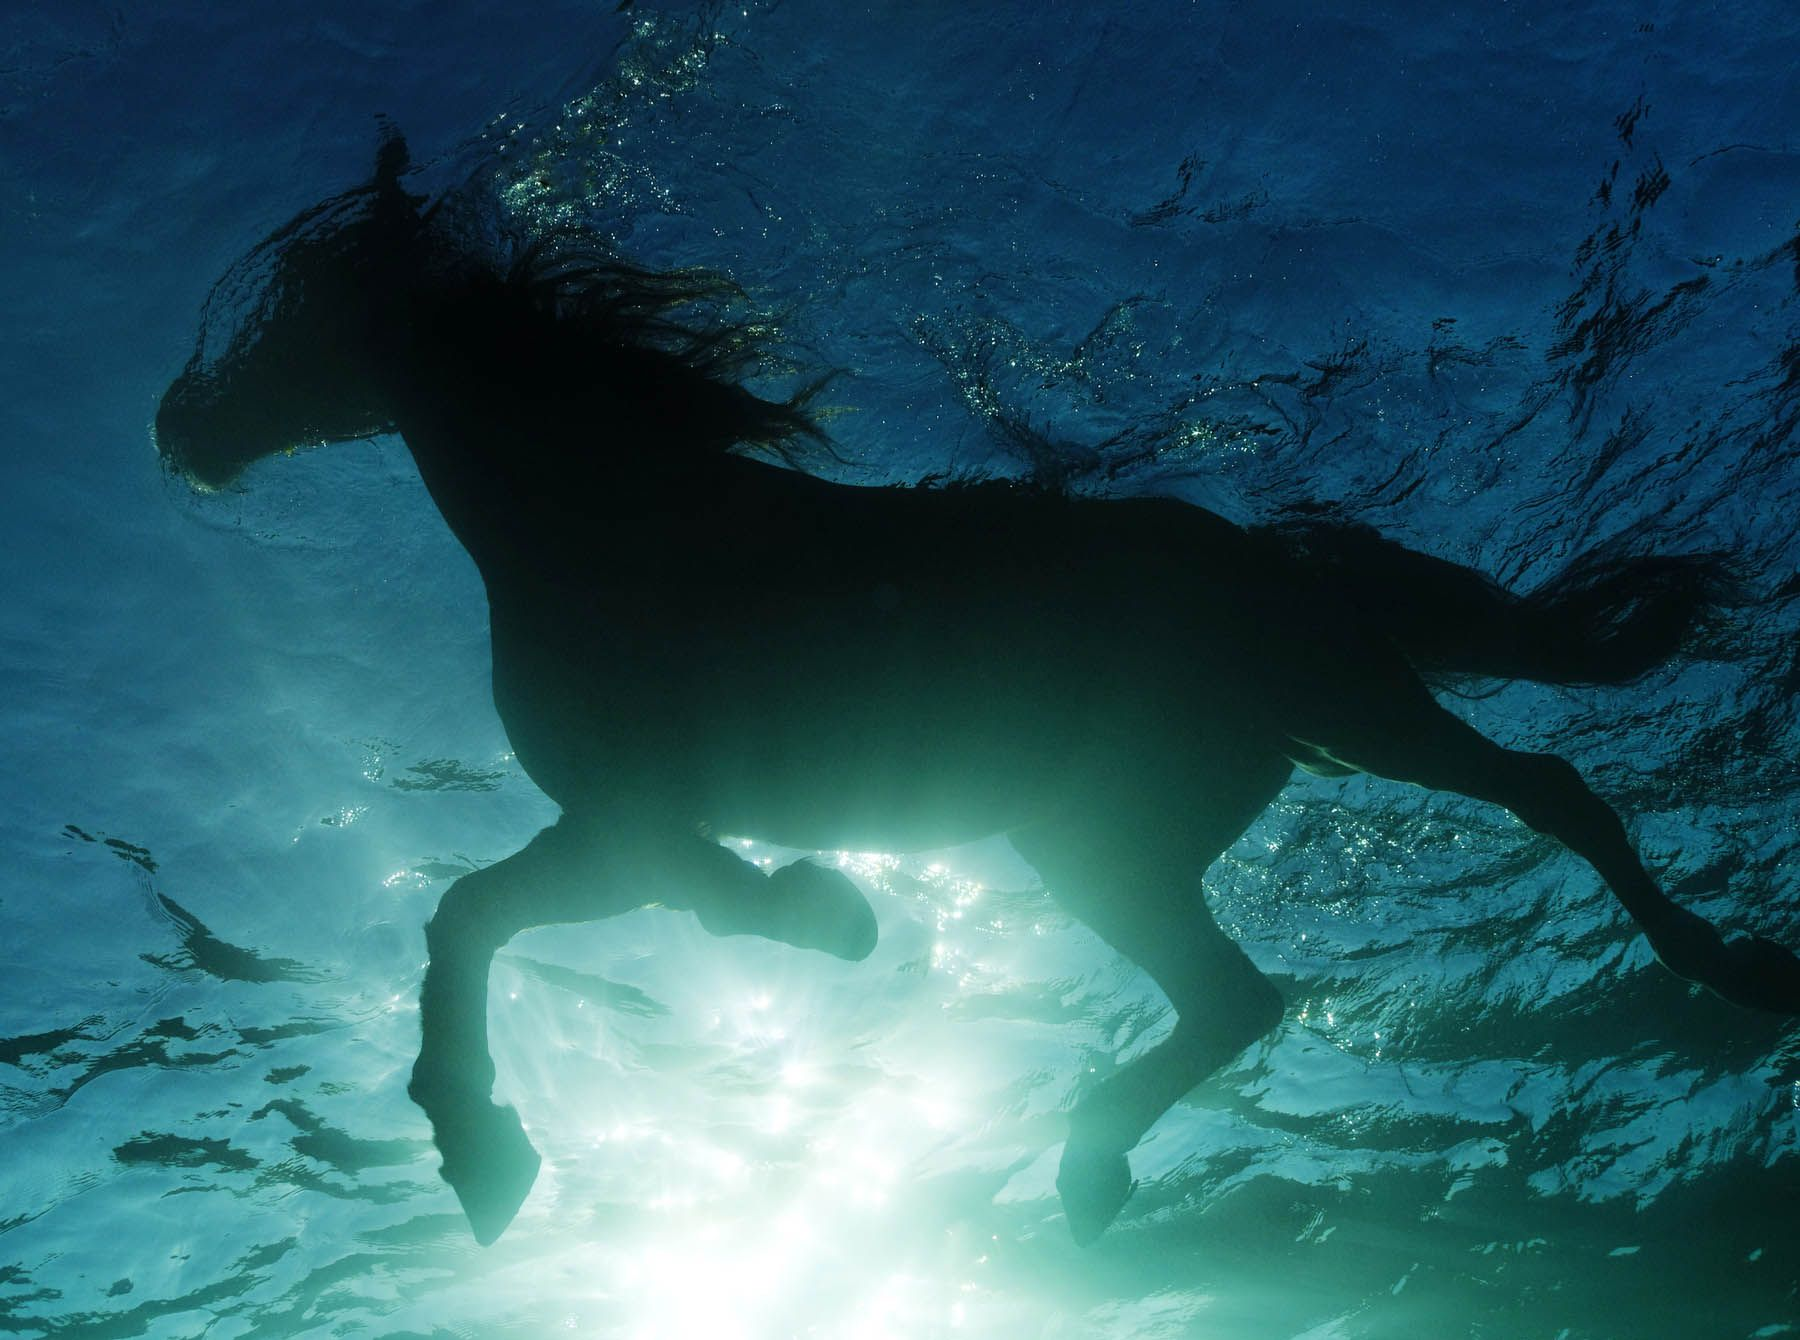 water horse horse horse in water hd photo � nice hd